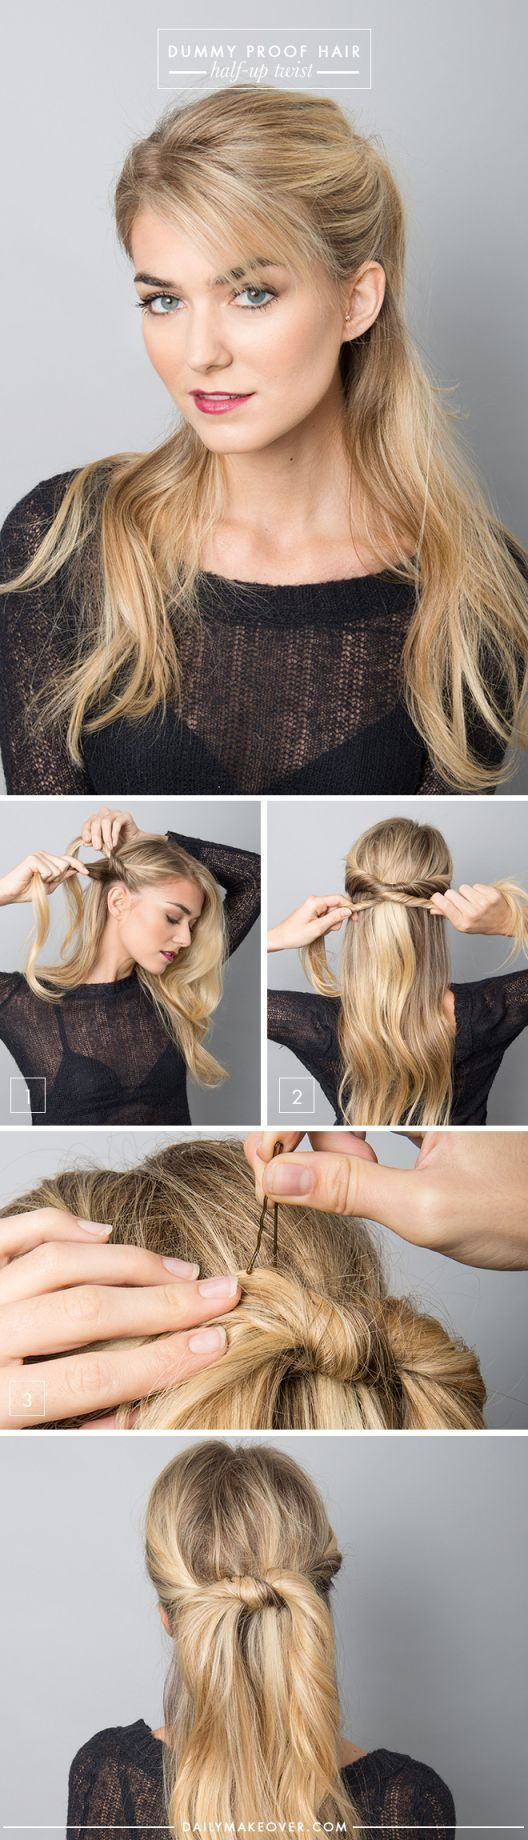 dummy proof hairstyles that everyone can master simple